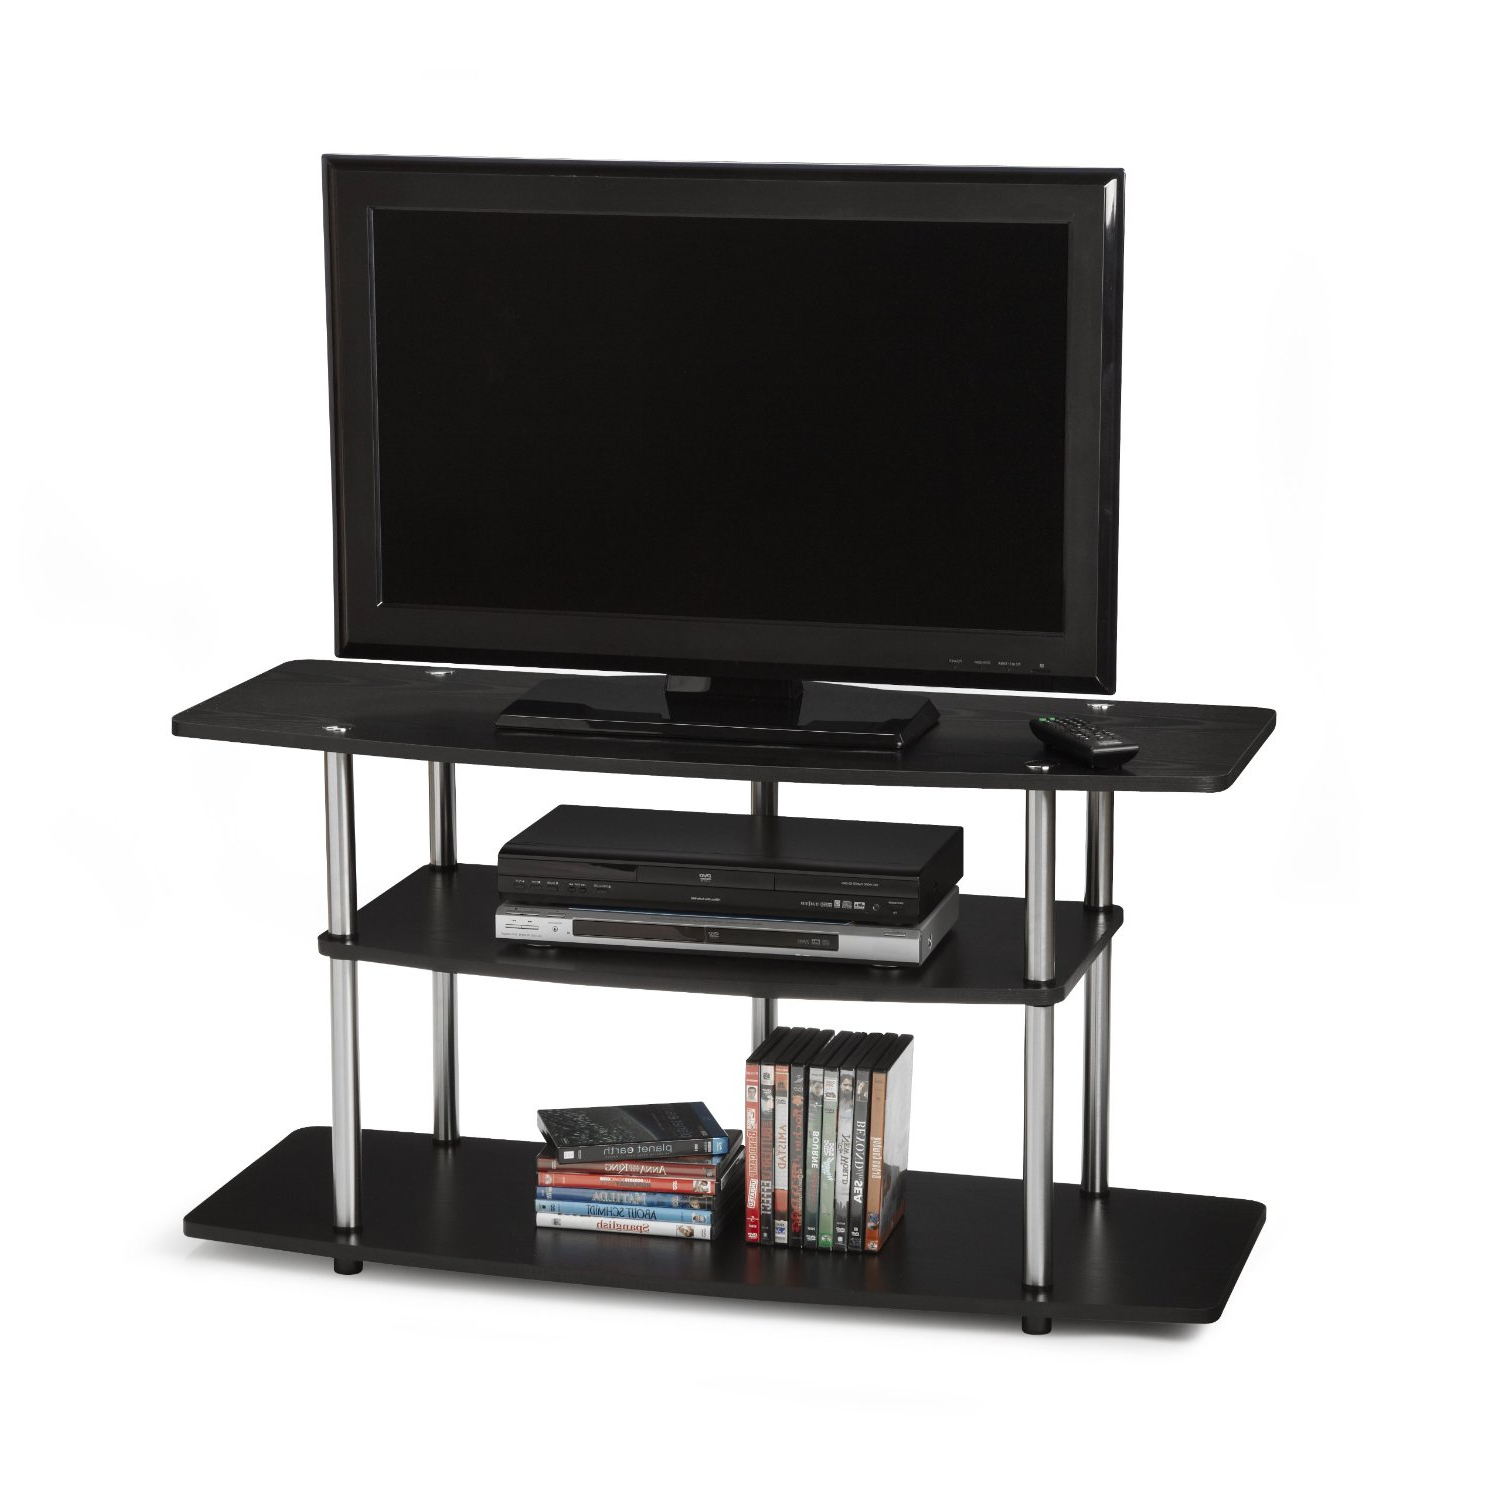 Homedesign: Television Stands & Entertainment Centers For Wide Tv Stands Entertainment Center Columbia Walnut/black (View 6 of 20)